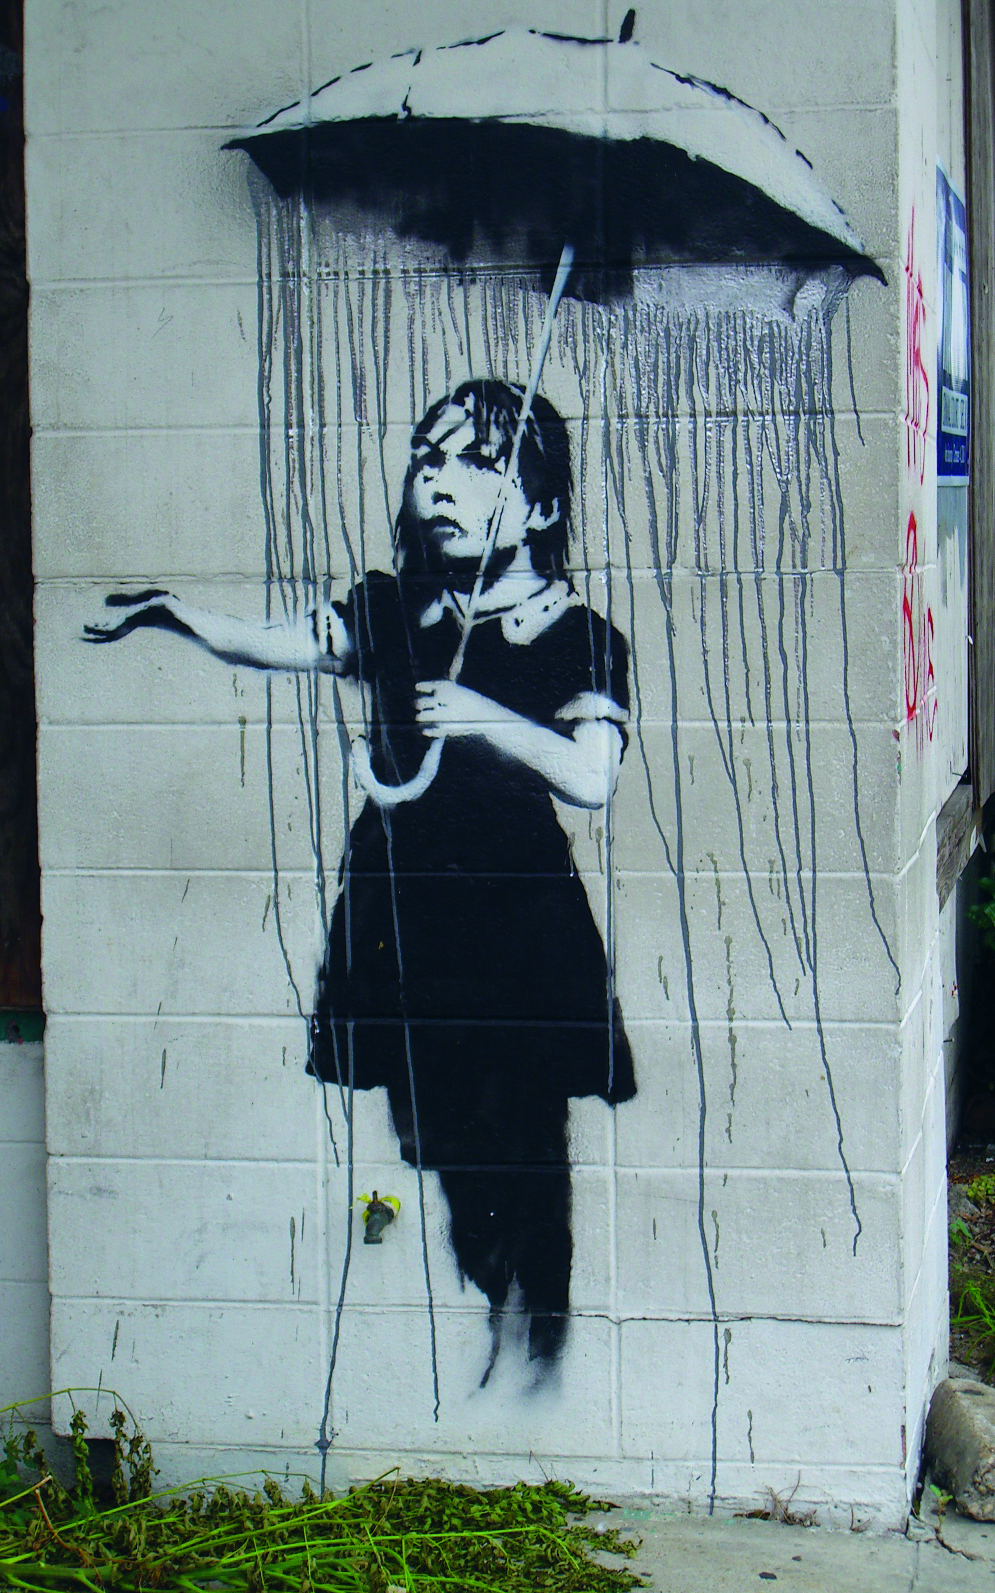 Umbrella Girl, street art by Banksy, New Orleans, USA 2008